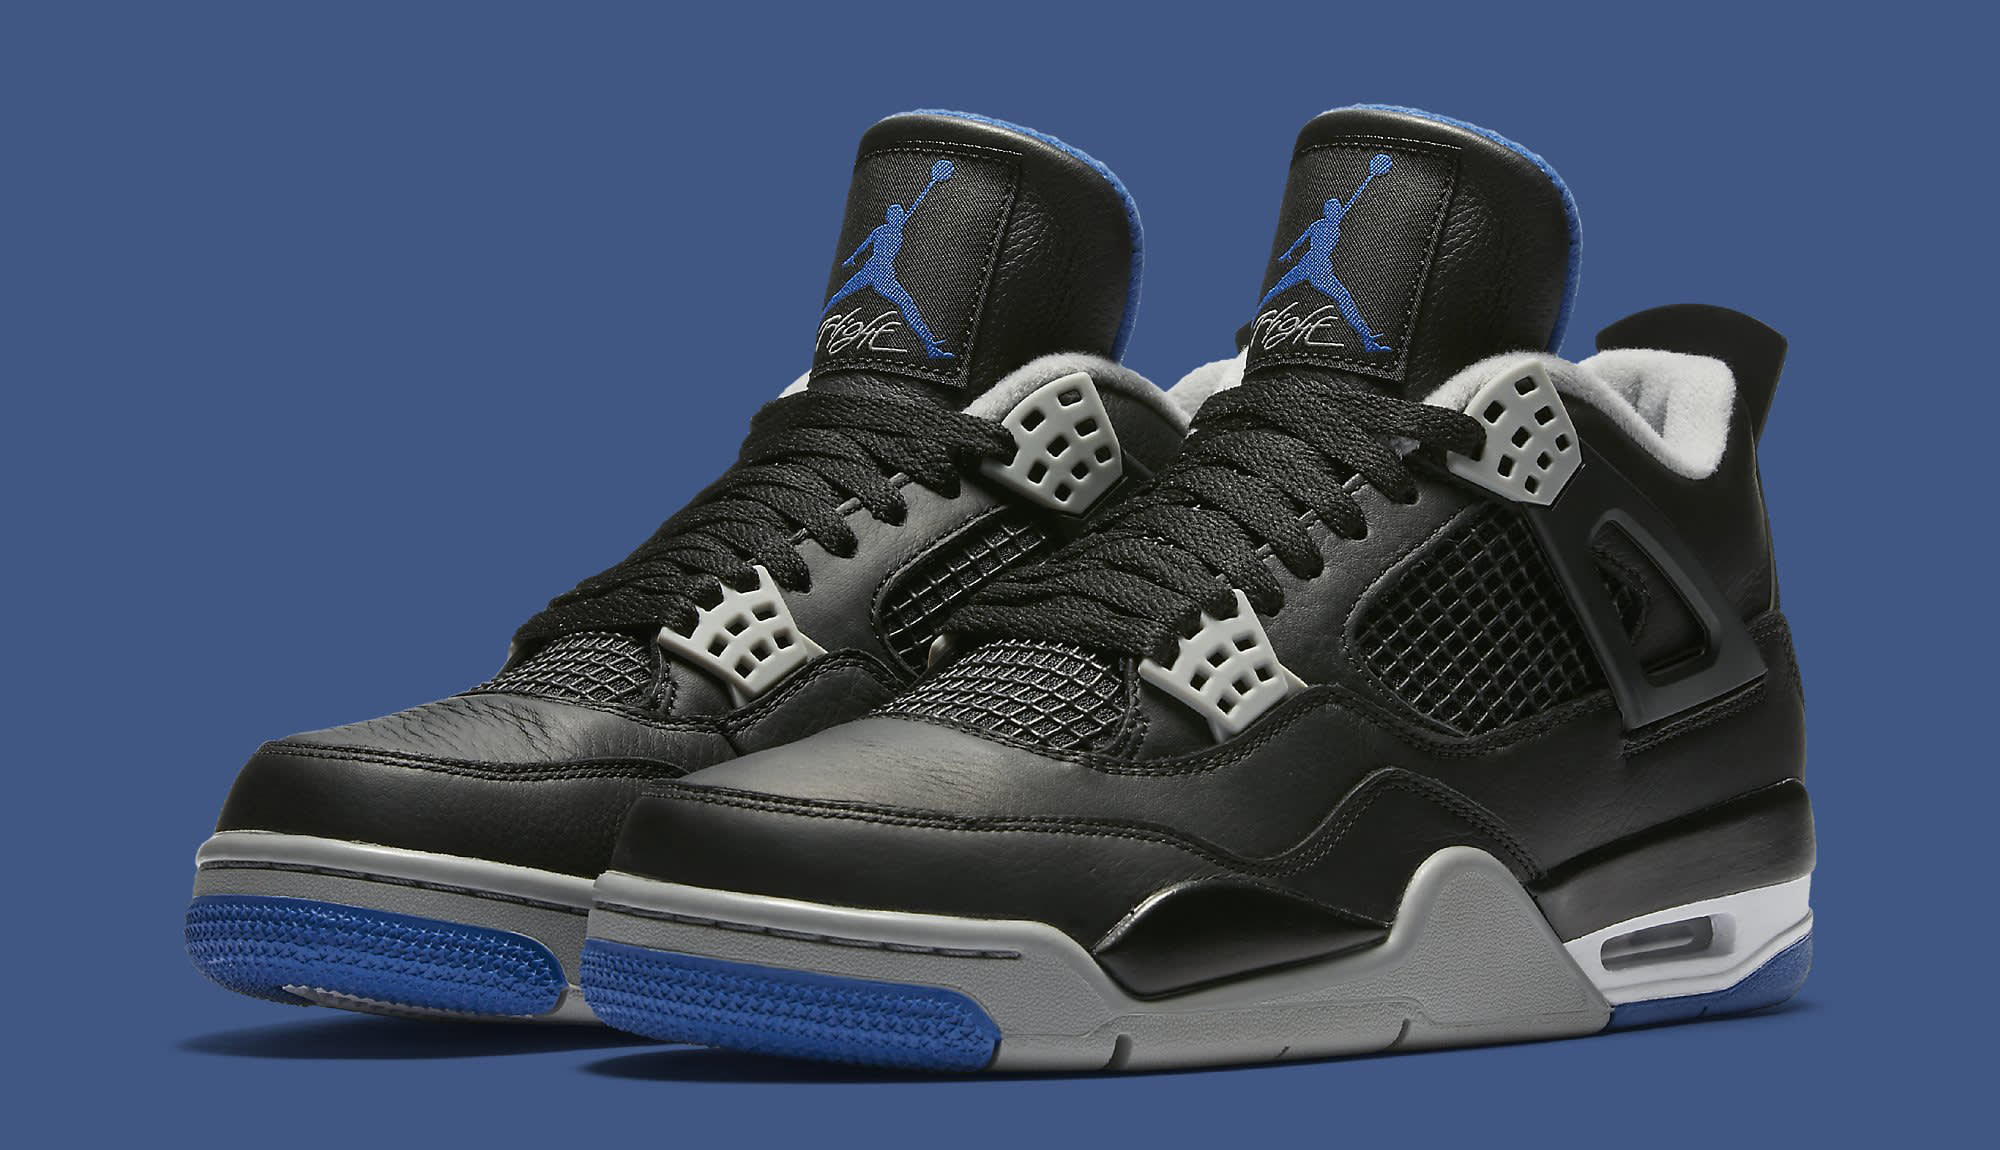 air jordan 4 black royal